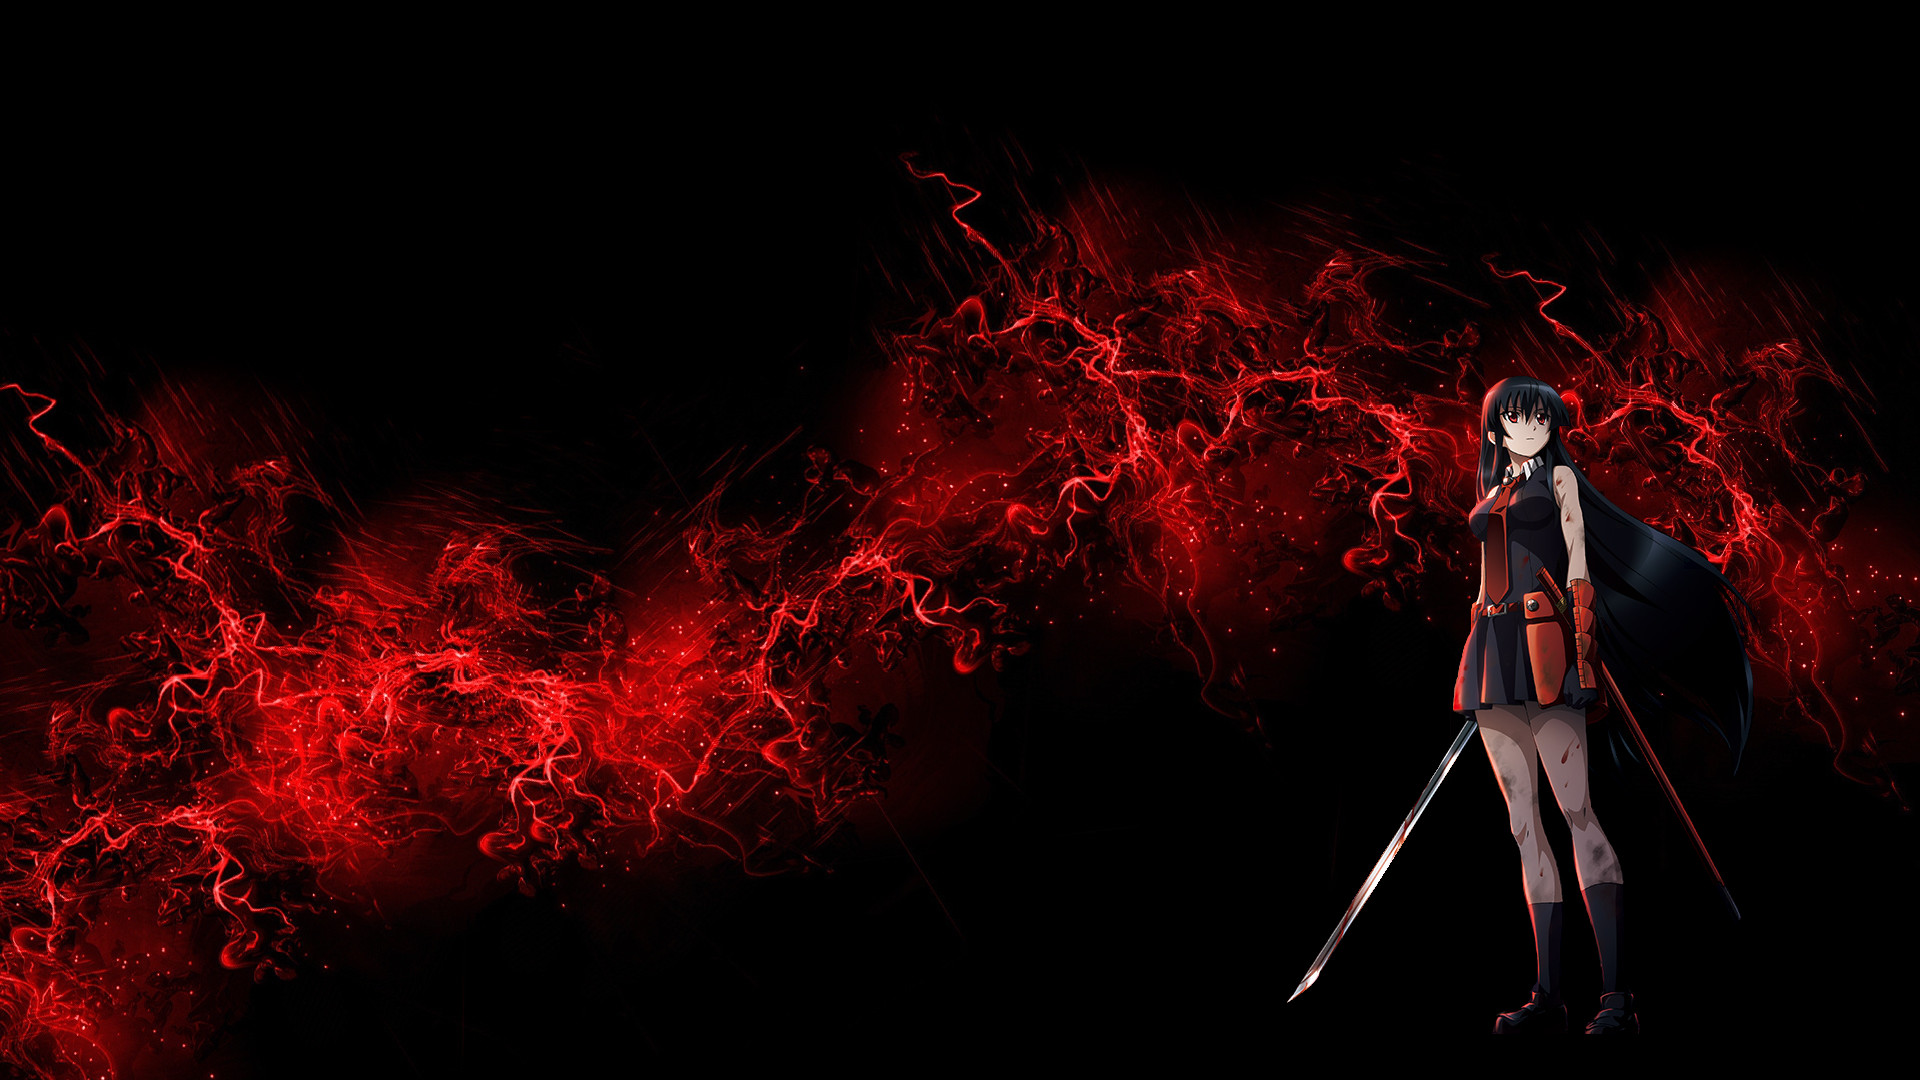 Red and black anime wallpaper 72 images - Anime wallpaper black background ...